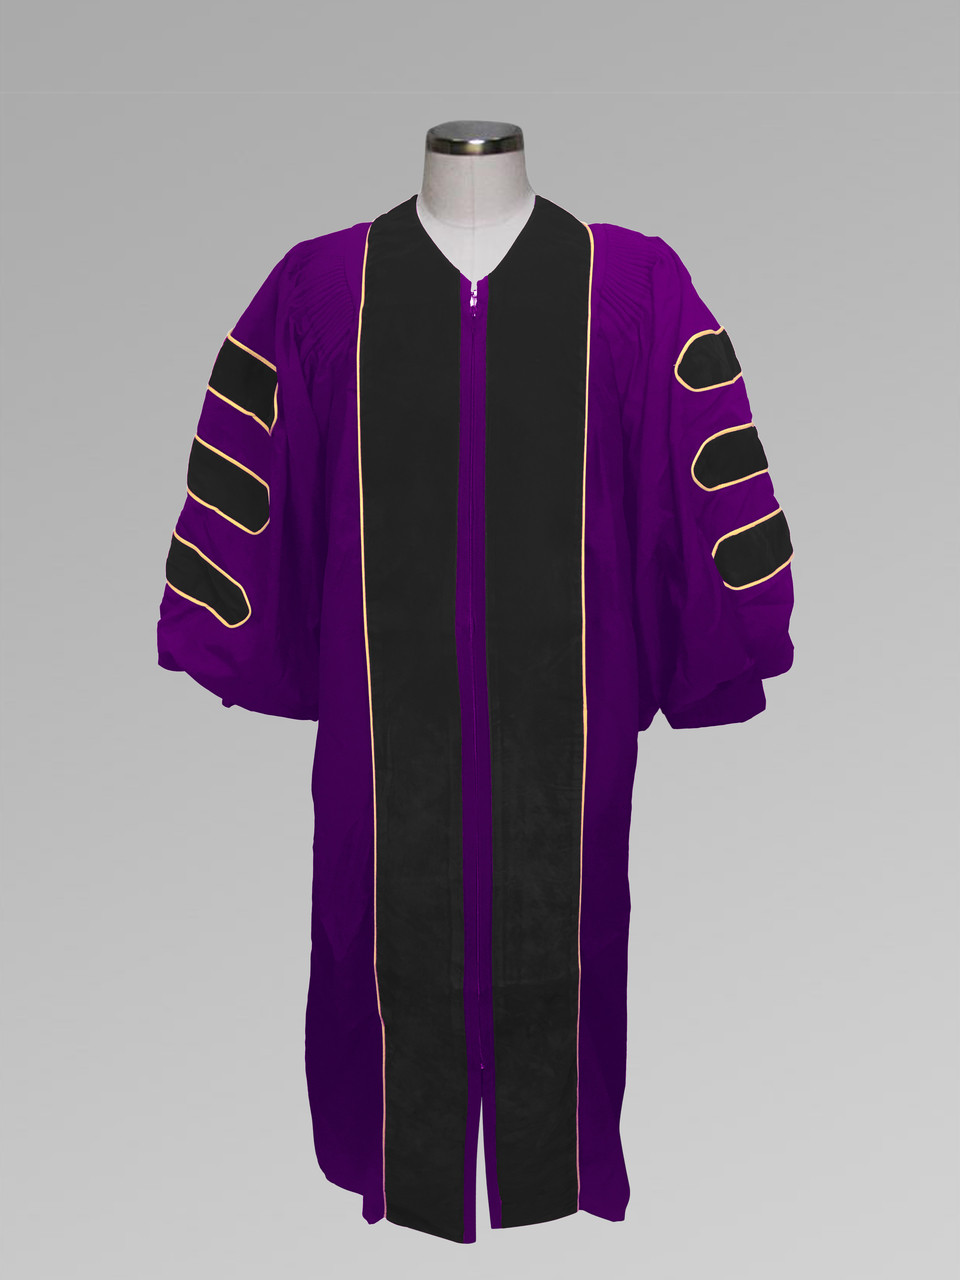 Clergy Robe Purple Doctoral Bars Clergy Robe